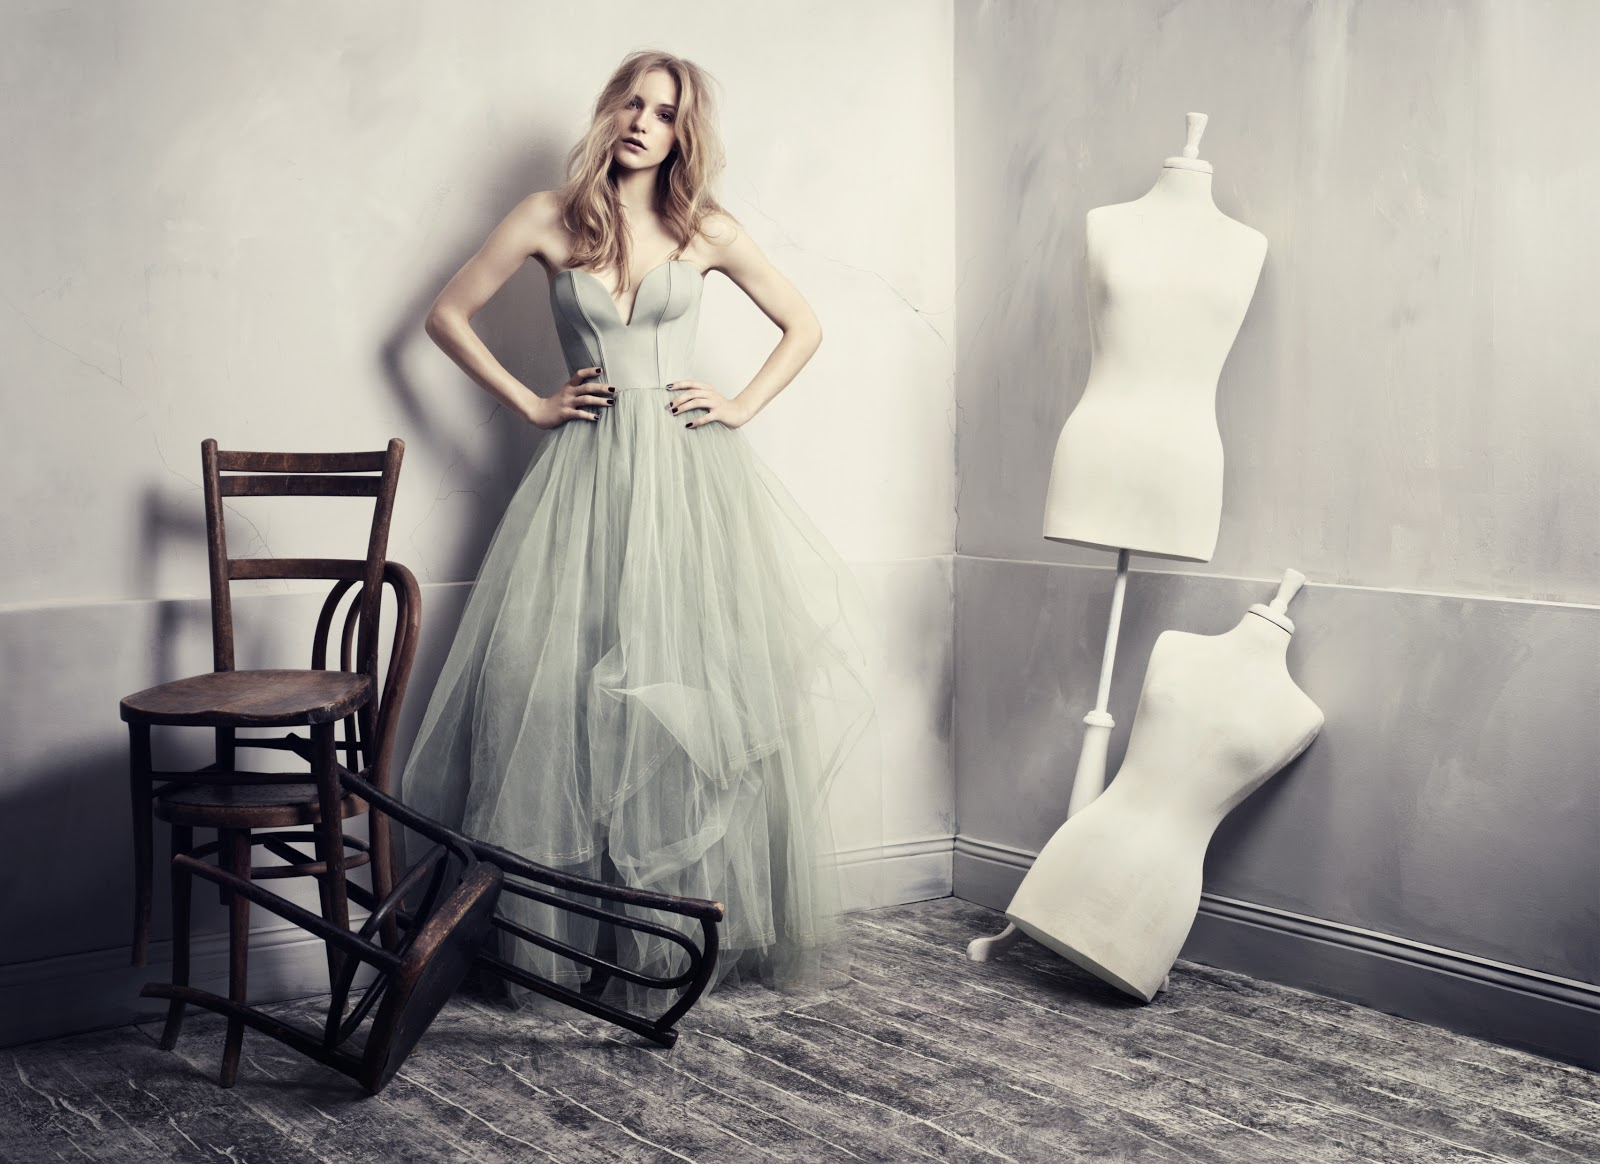 The Hallstand: Green Hollywood Glamour by H&M